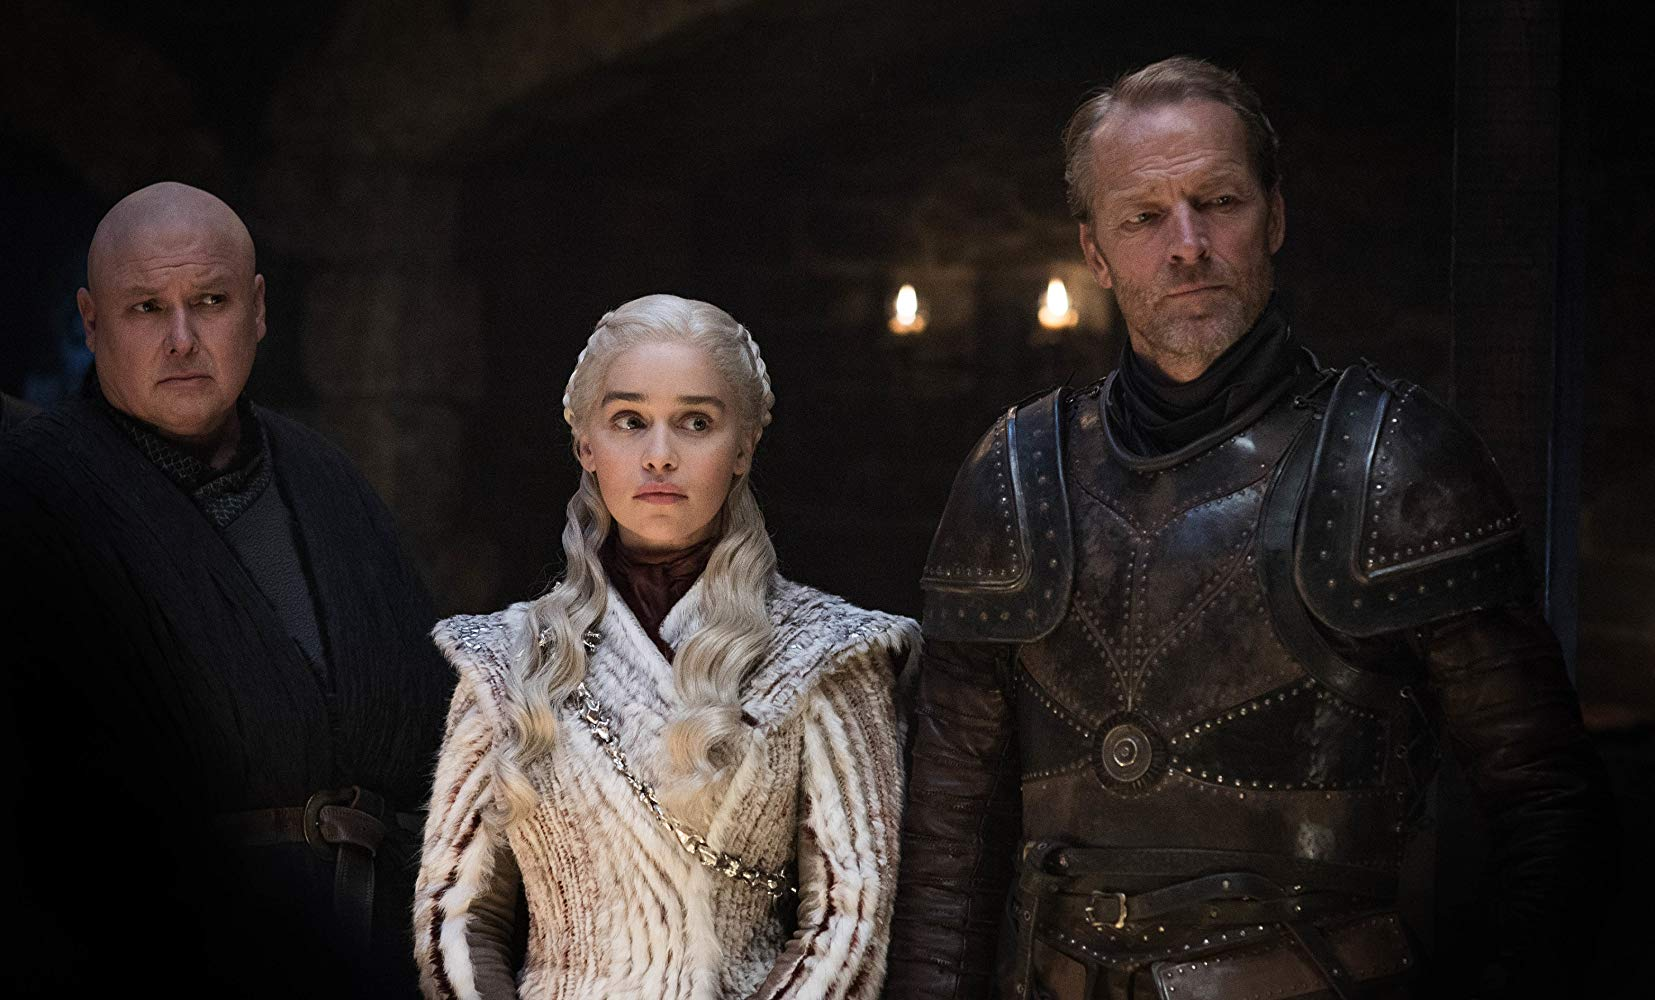 Iain Glen, Conleth Hill, and Emilia Clarke in Game of Thrones (2011)© HBO